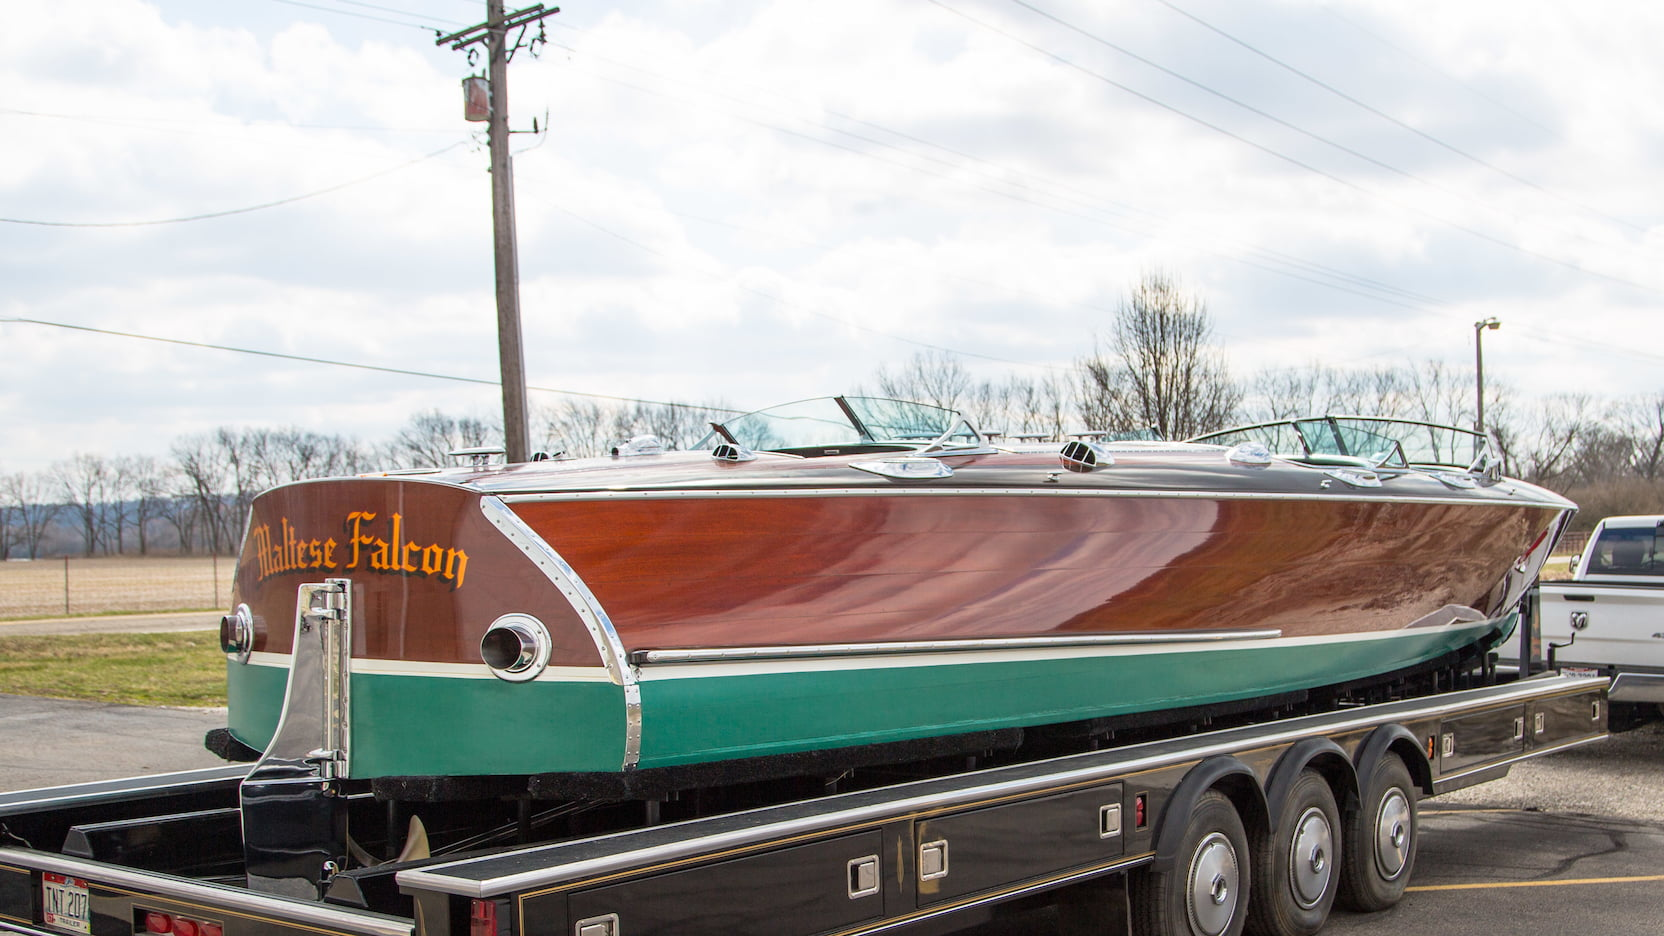 Greavette Custom trailer